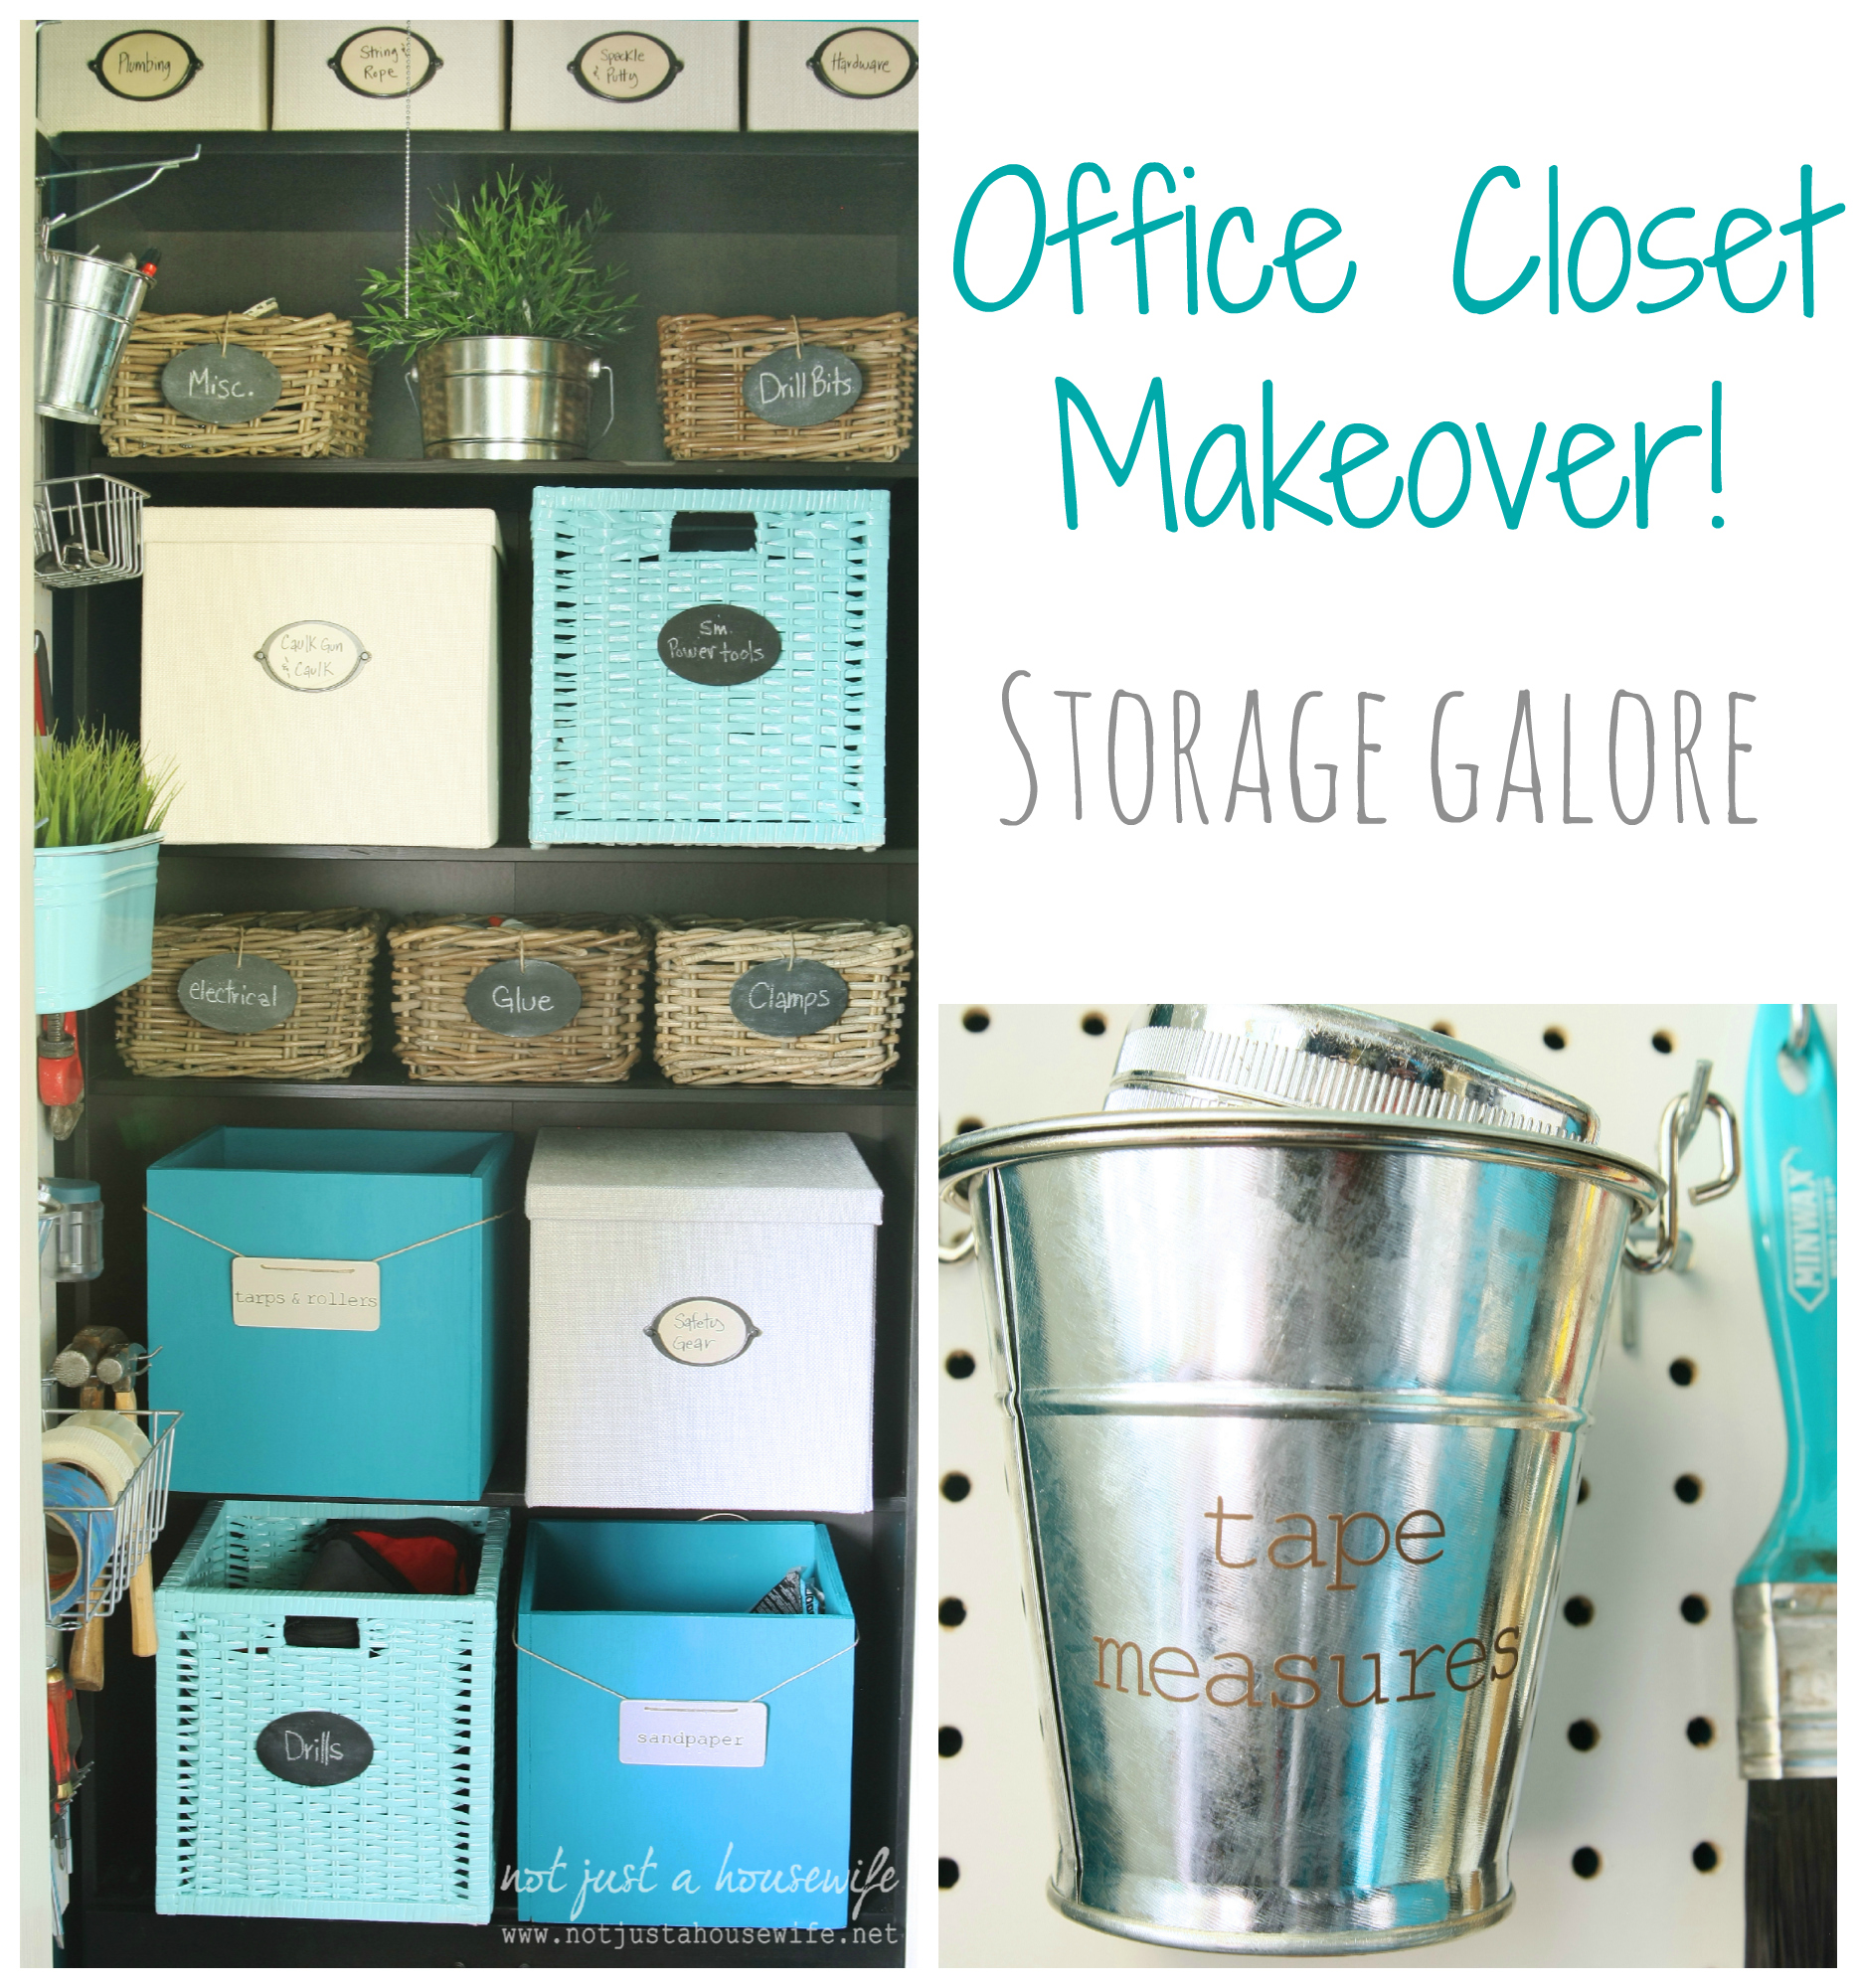 Stupendous Office Closet Makeover The Big Reveal Stacy Risenmay Largest Home Design Picture Inspirations Pitcheantrous